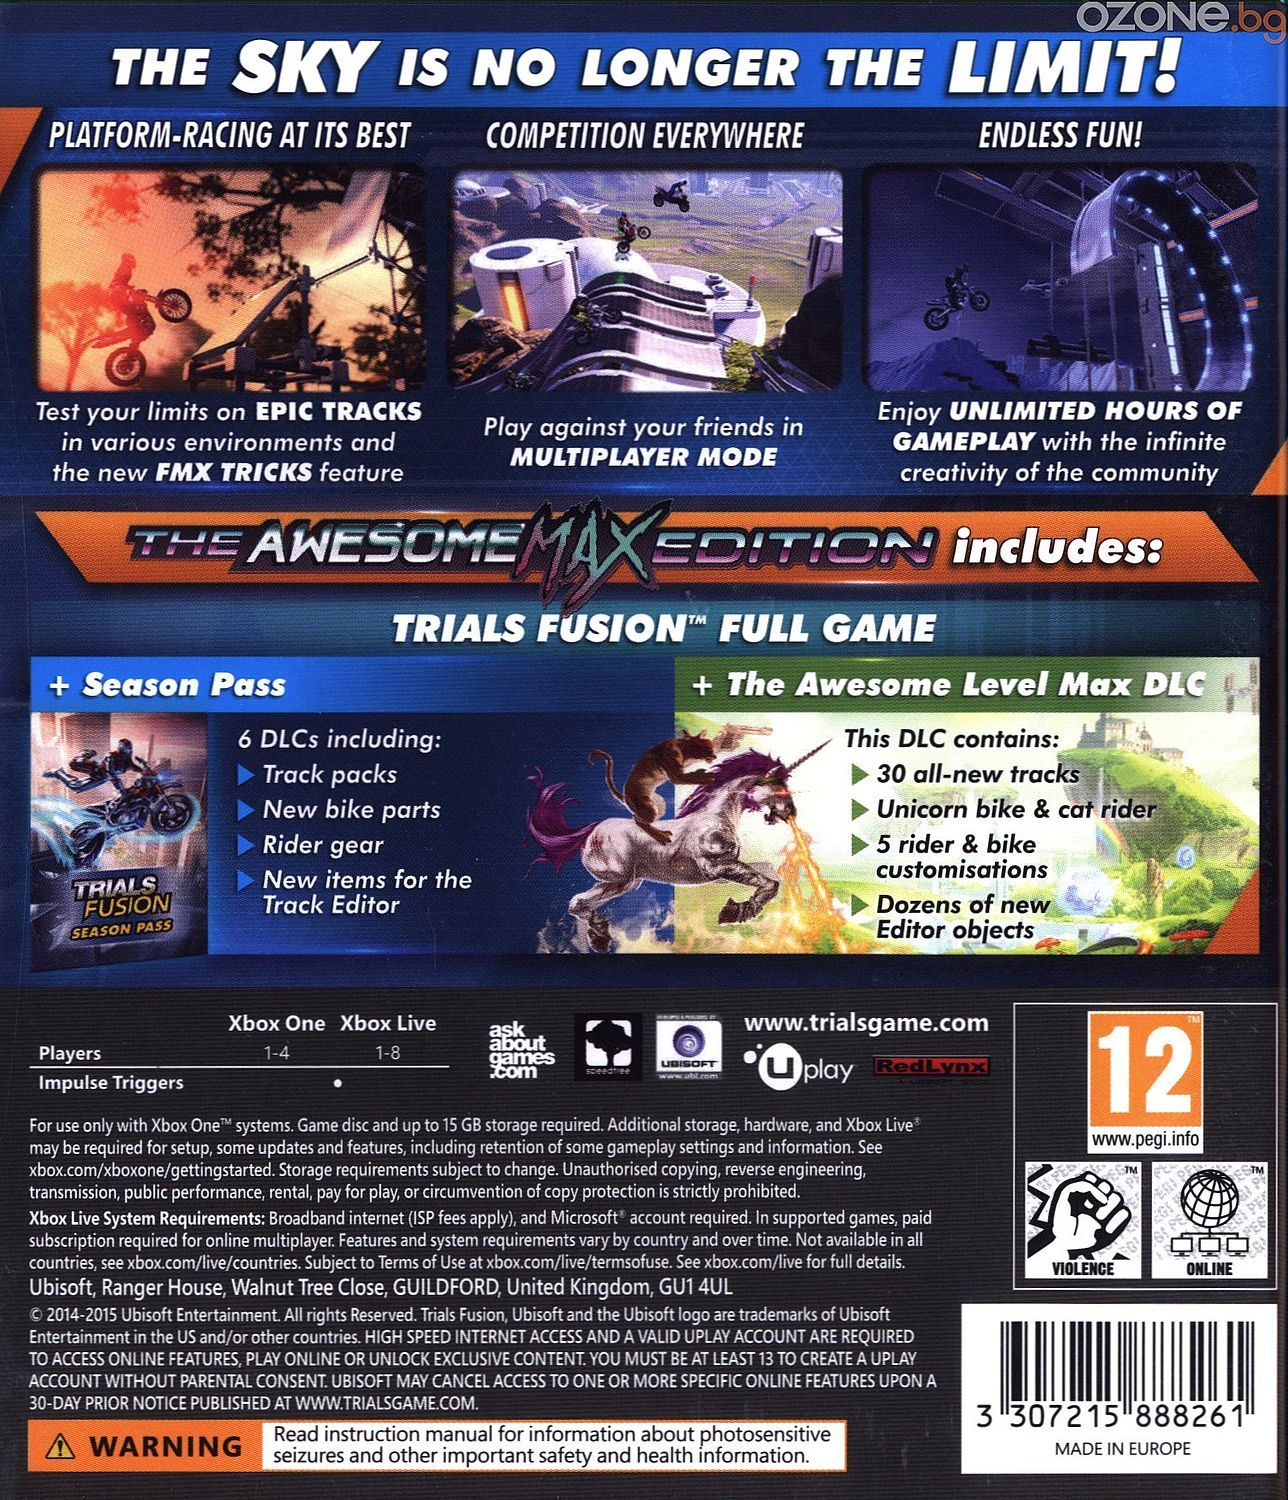 Trials Fusion The Awesome Max Edition (Xbox One) - 13